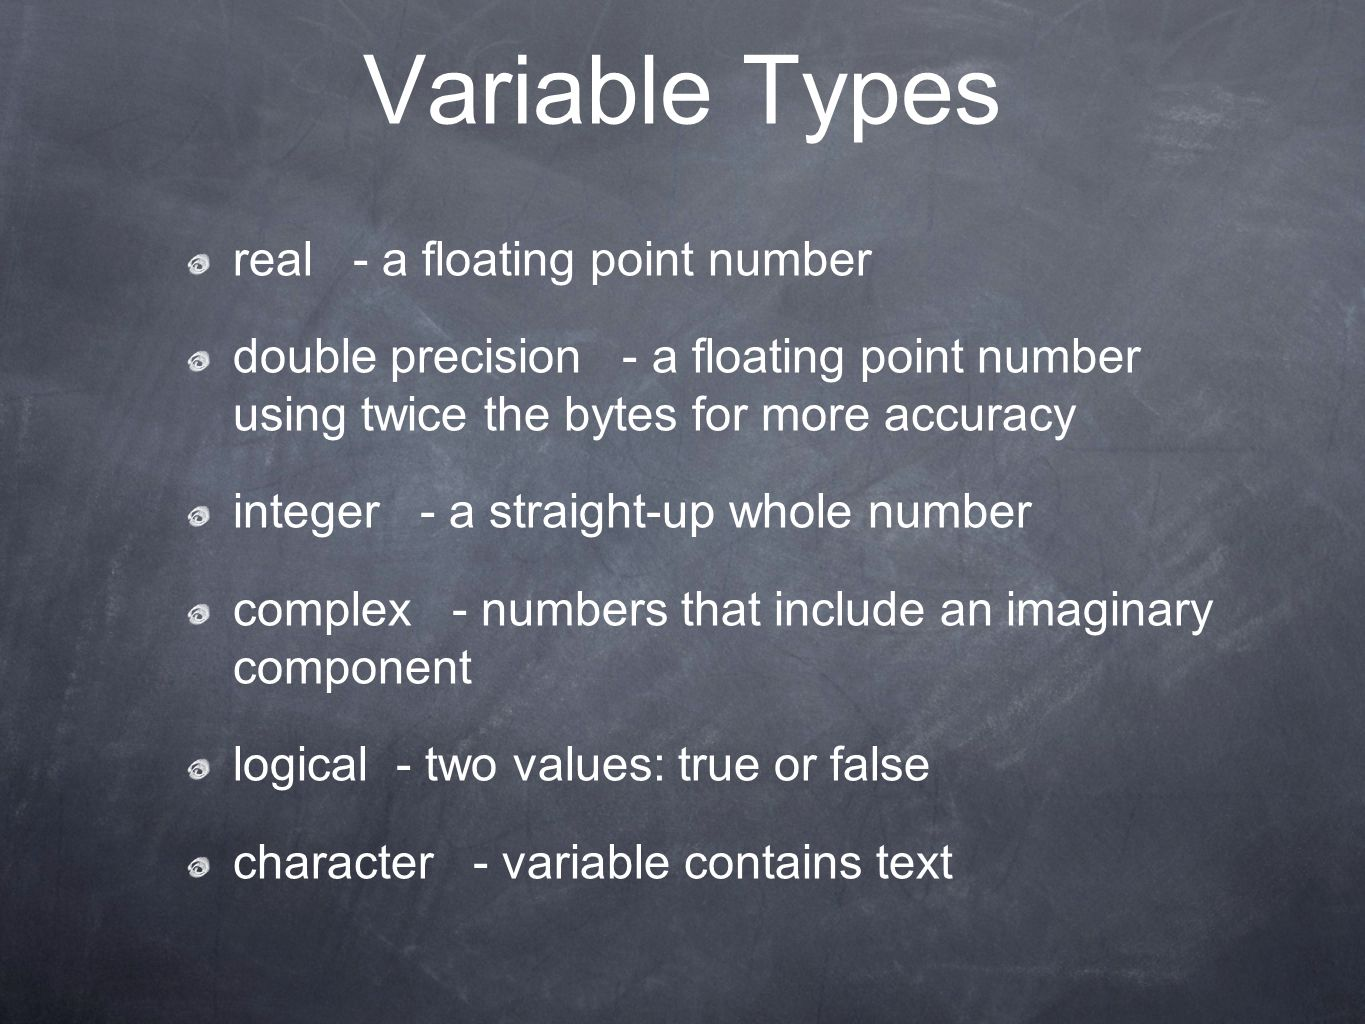 Variable Types real - a floating point number double precision - a floating point number using twice the bytes for more accuracy integer - a straight-up whole number complex - numbers that include an imaginary component logical - two values: true or false character - variable contains text